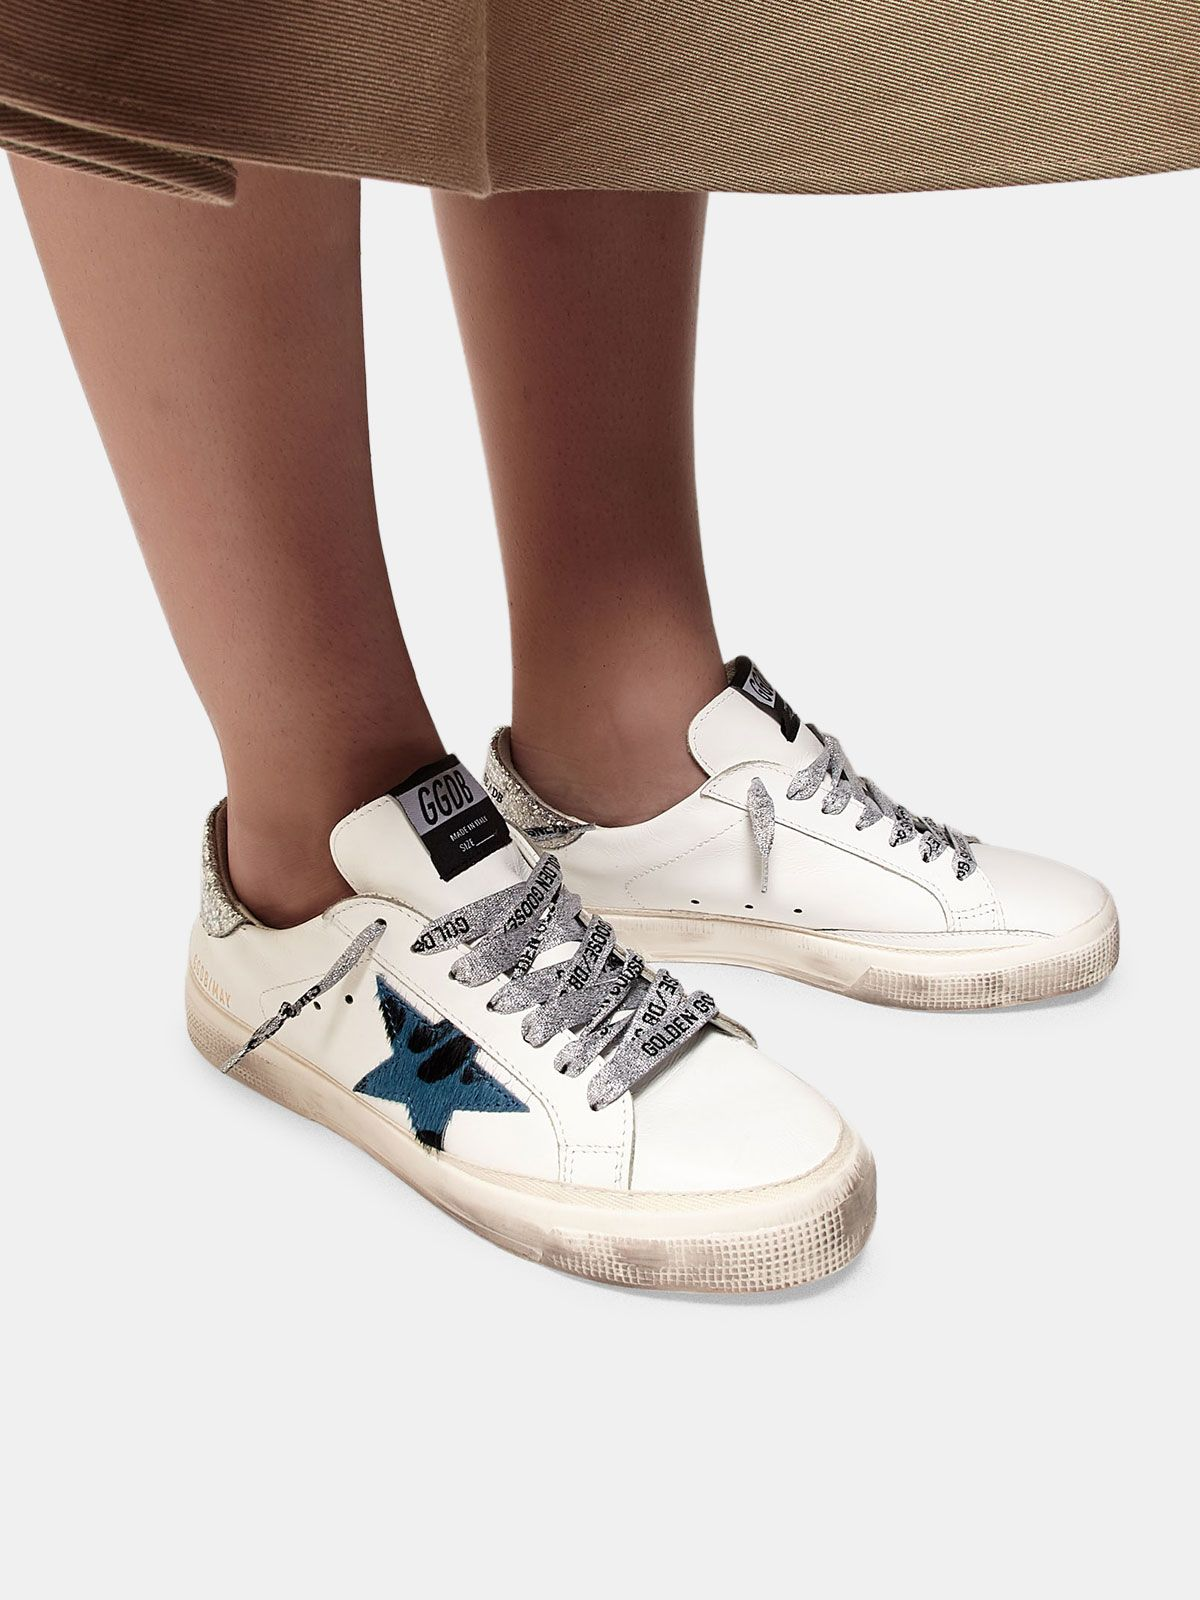 Golden Goose - May sneakers with animal print star and glitter heel tab in